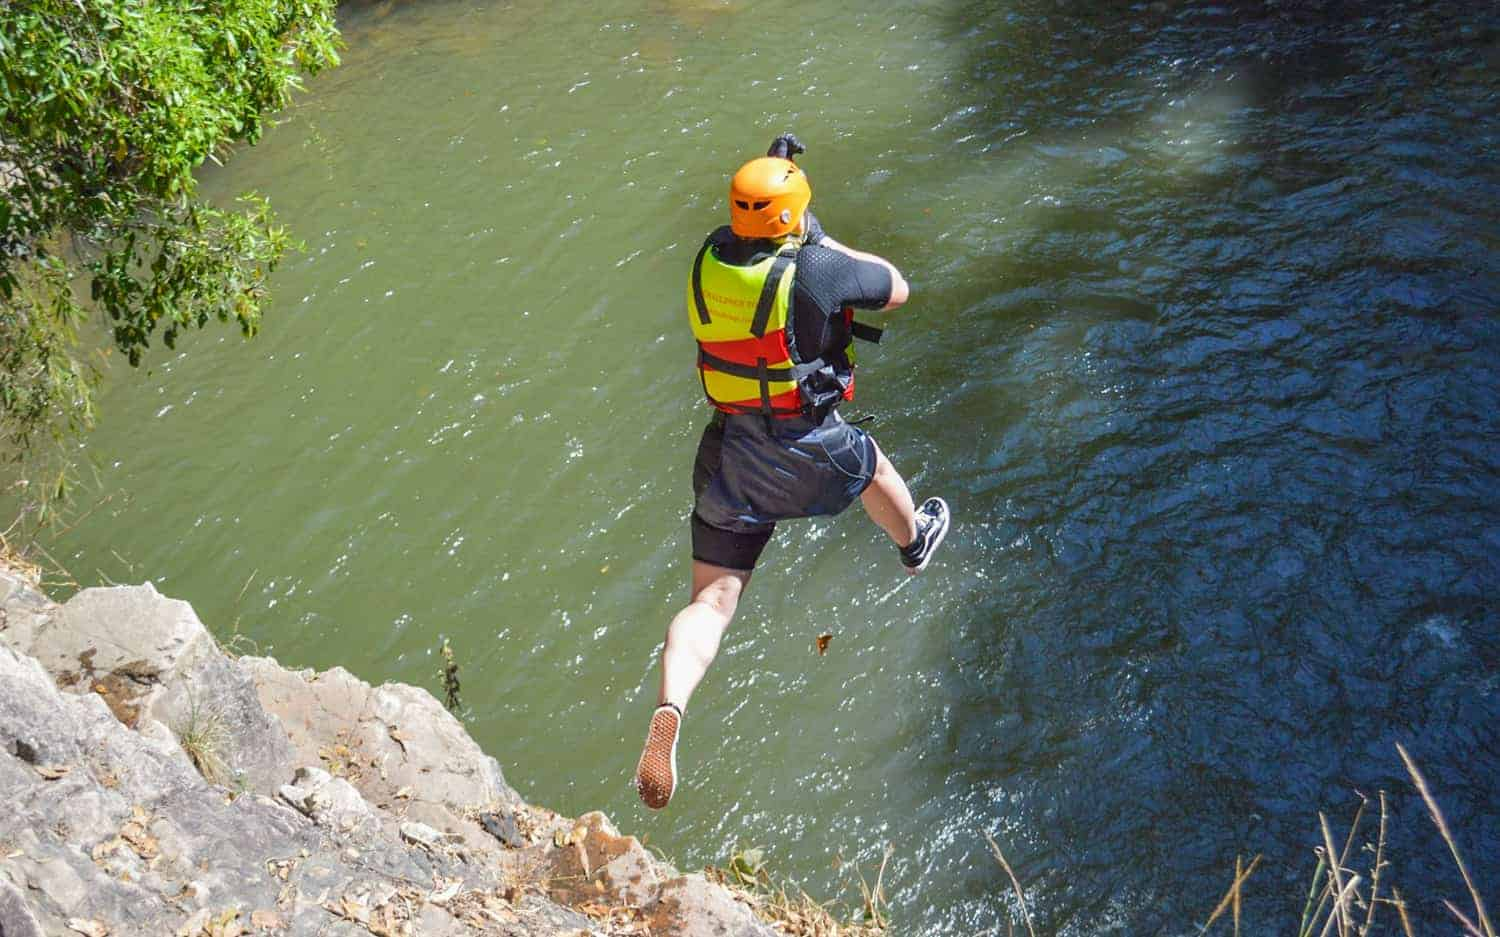 Canyoning in Dalat: An Adrenaline Junkie's Dream!